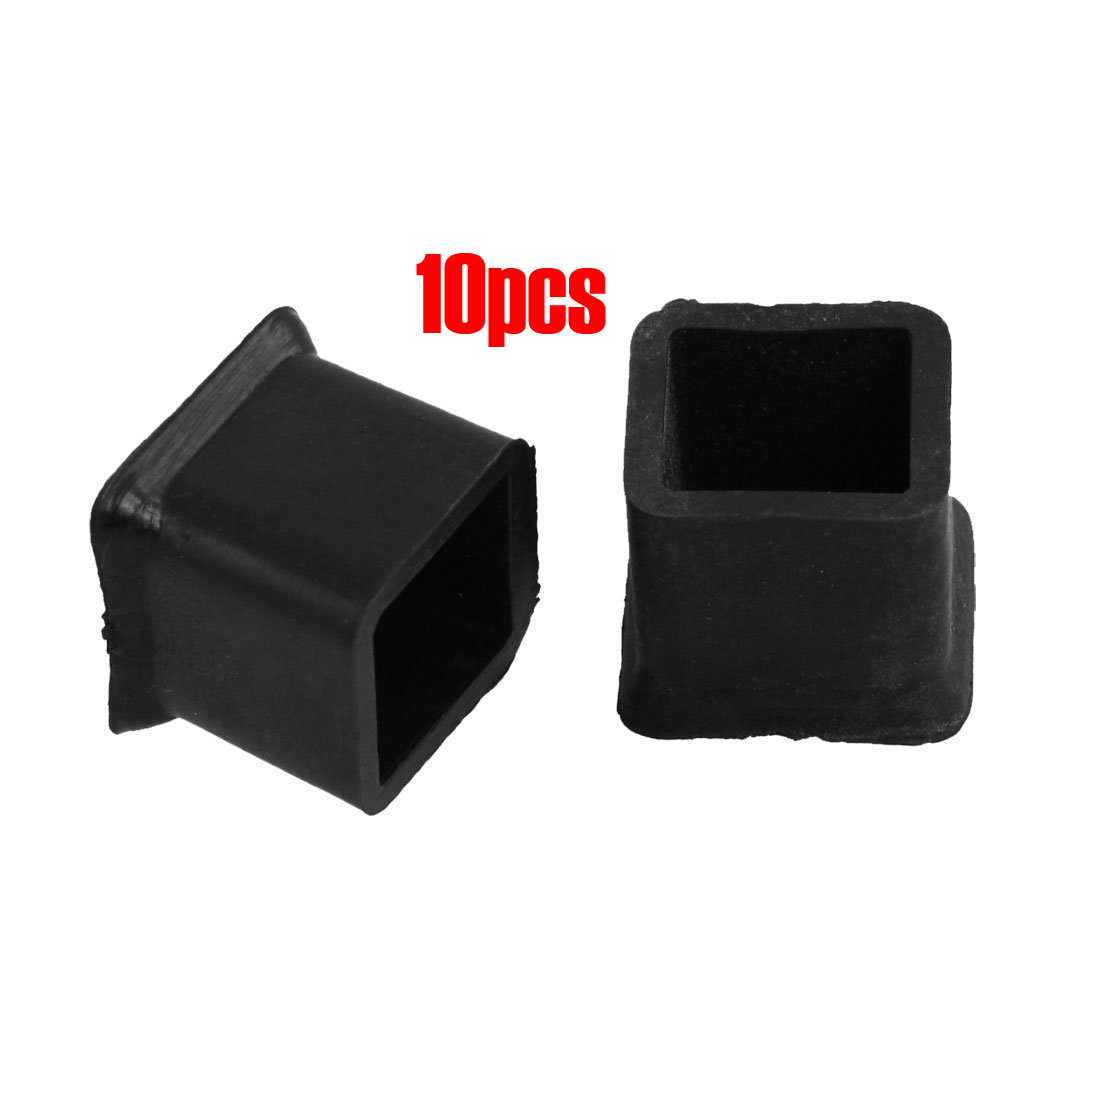 10 Pcs Furniture Chair Table Leg Rubber Foot Covers Protectors 20mm x 20mm10 Pcs Furniture Chair Table Leg Rubber Foot Covers Protectors 20mm x 20mm